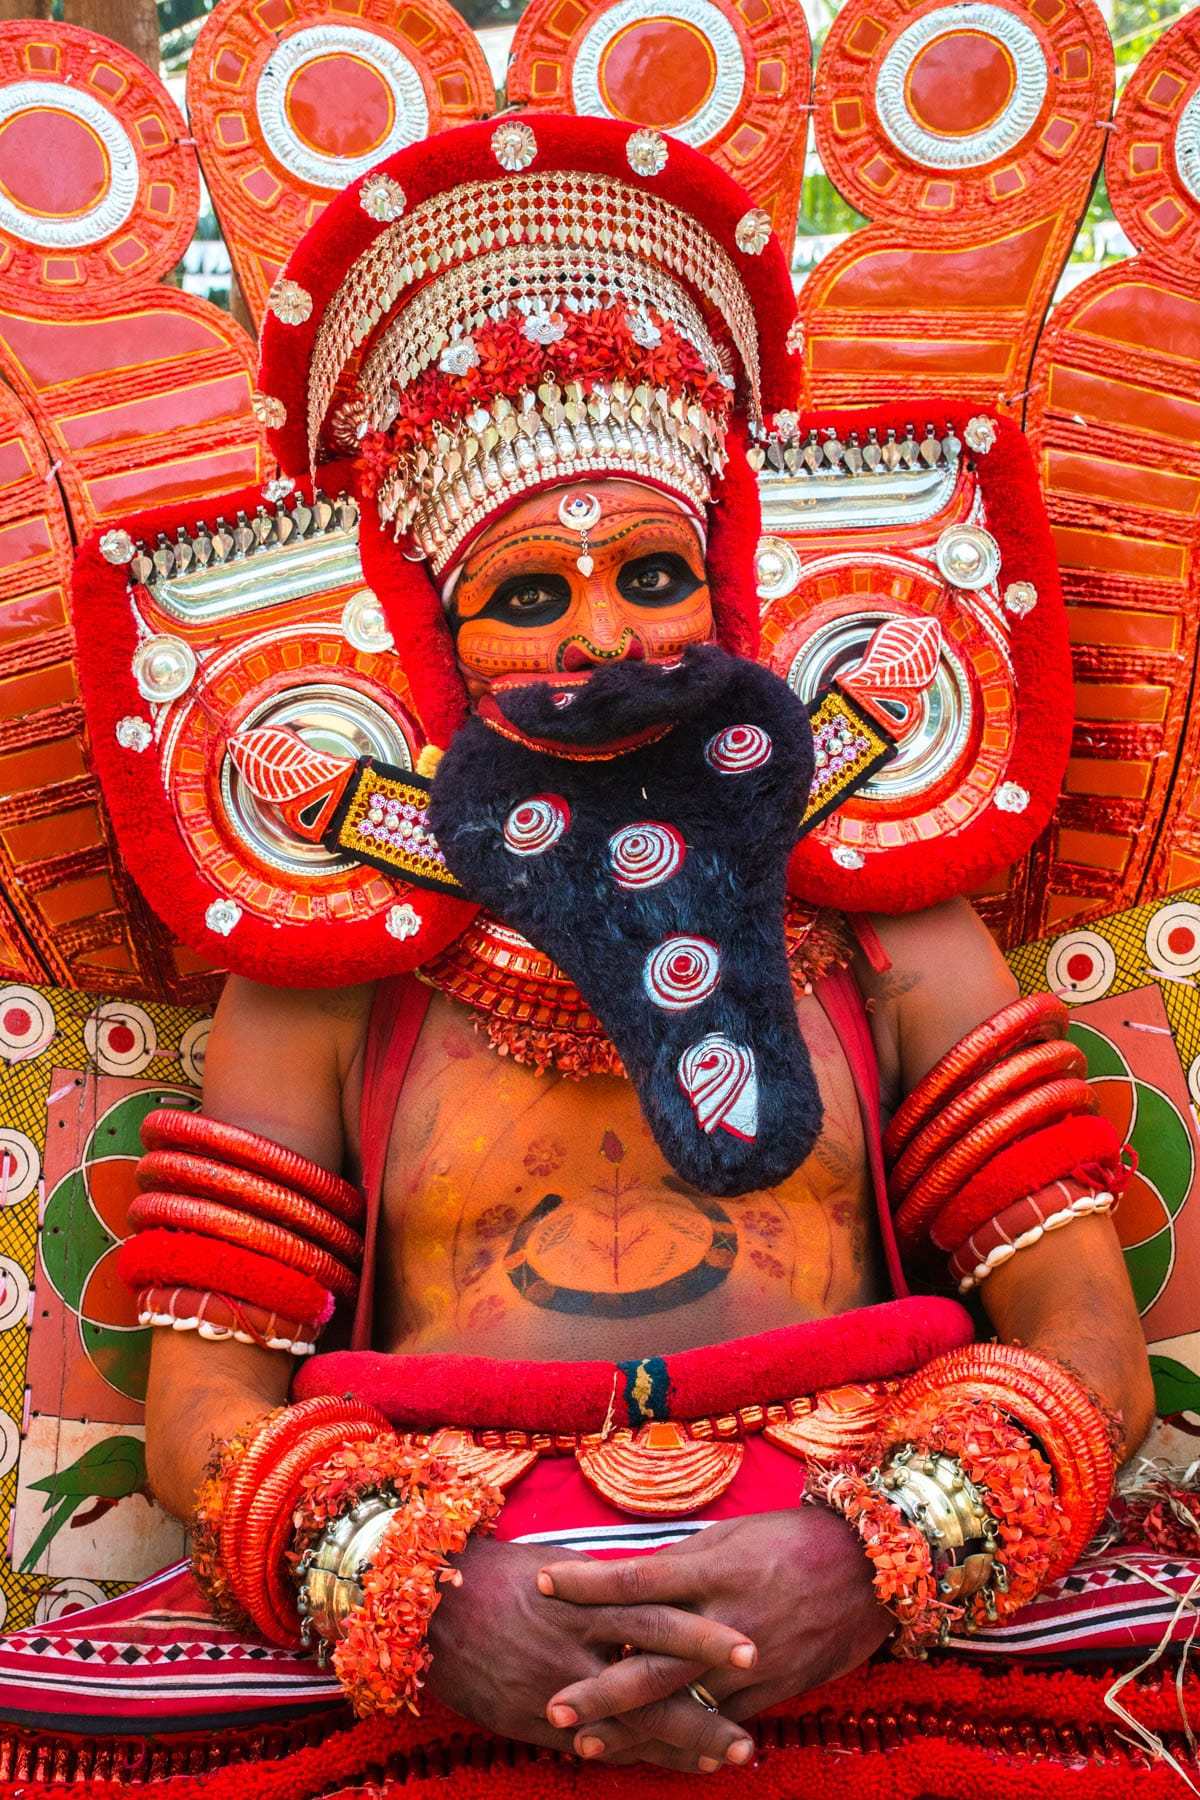 A Theyyam dancer catching his breath in Kannur, Kerala, a great off the beaten track activity in India.